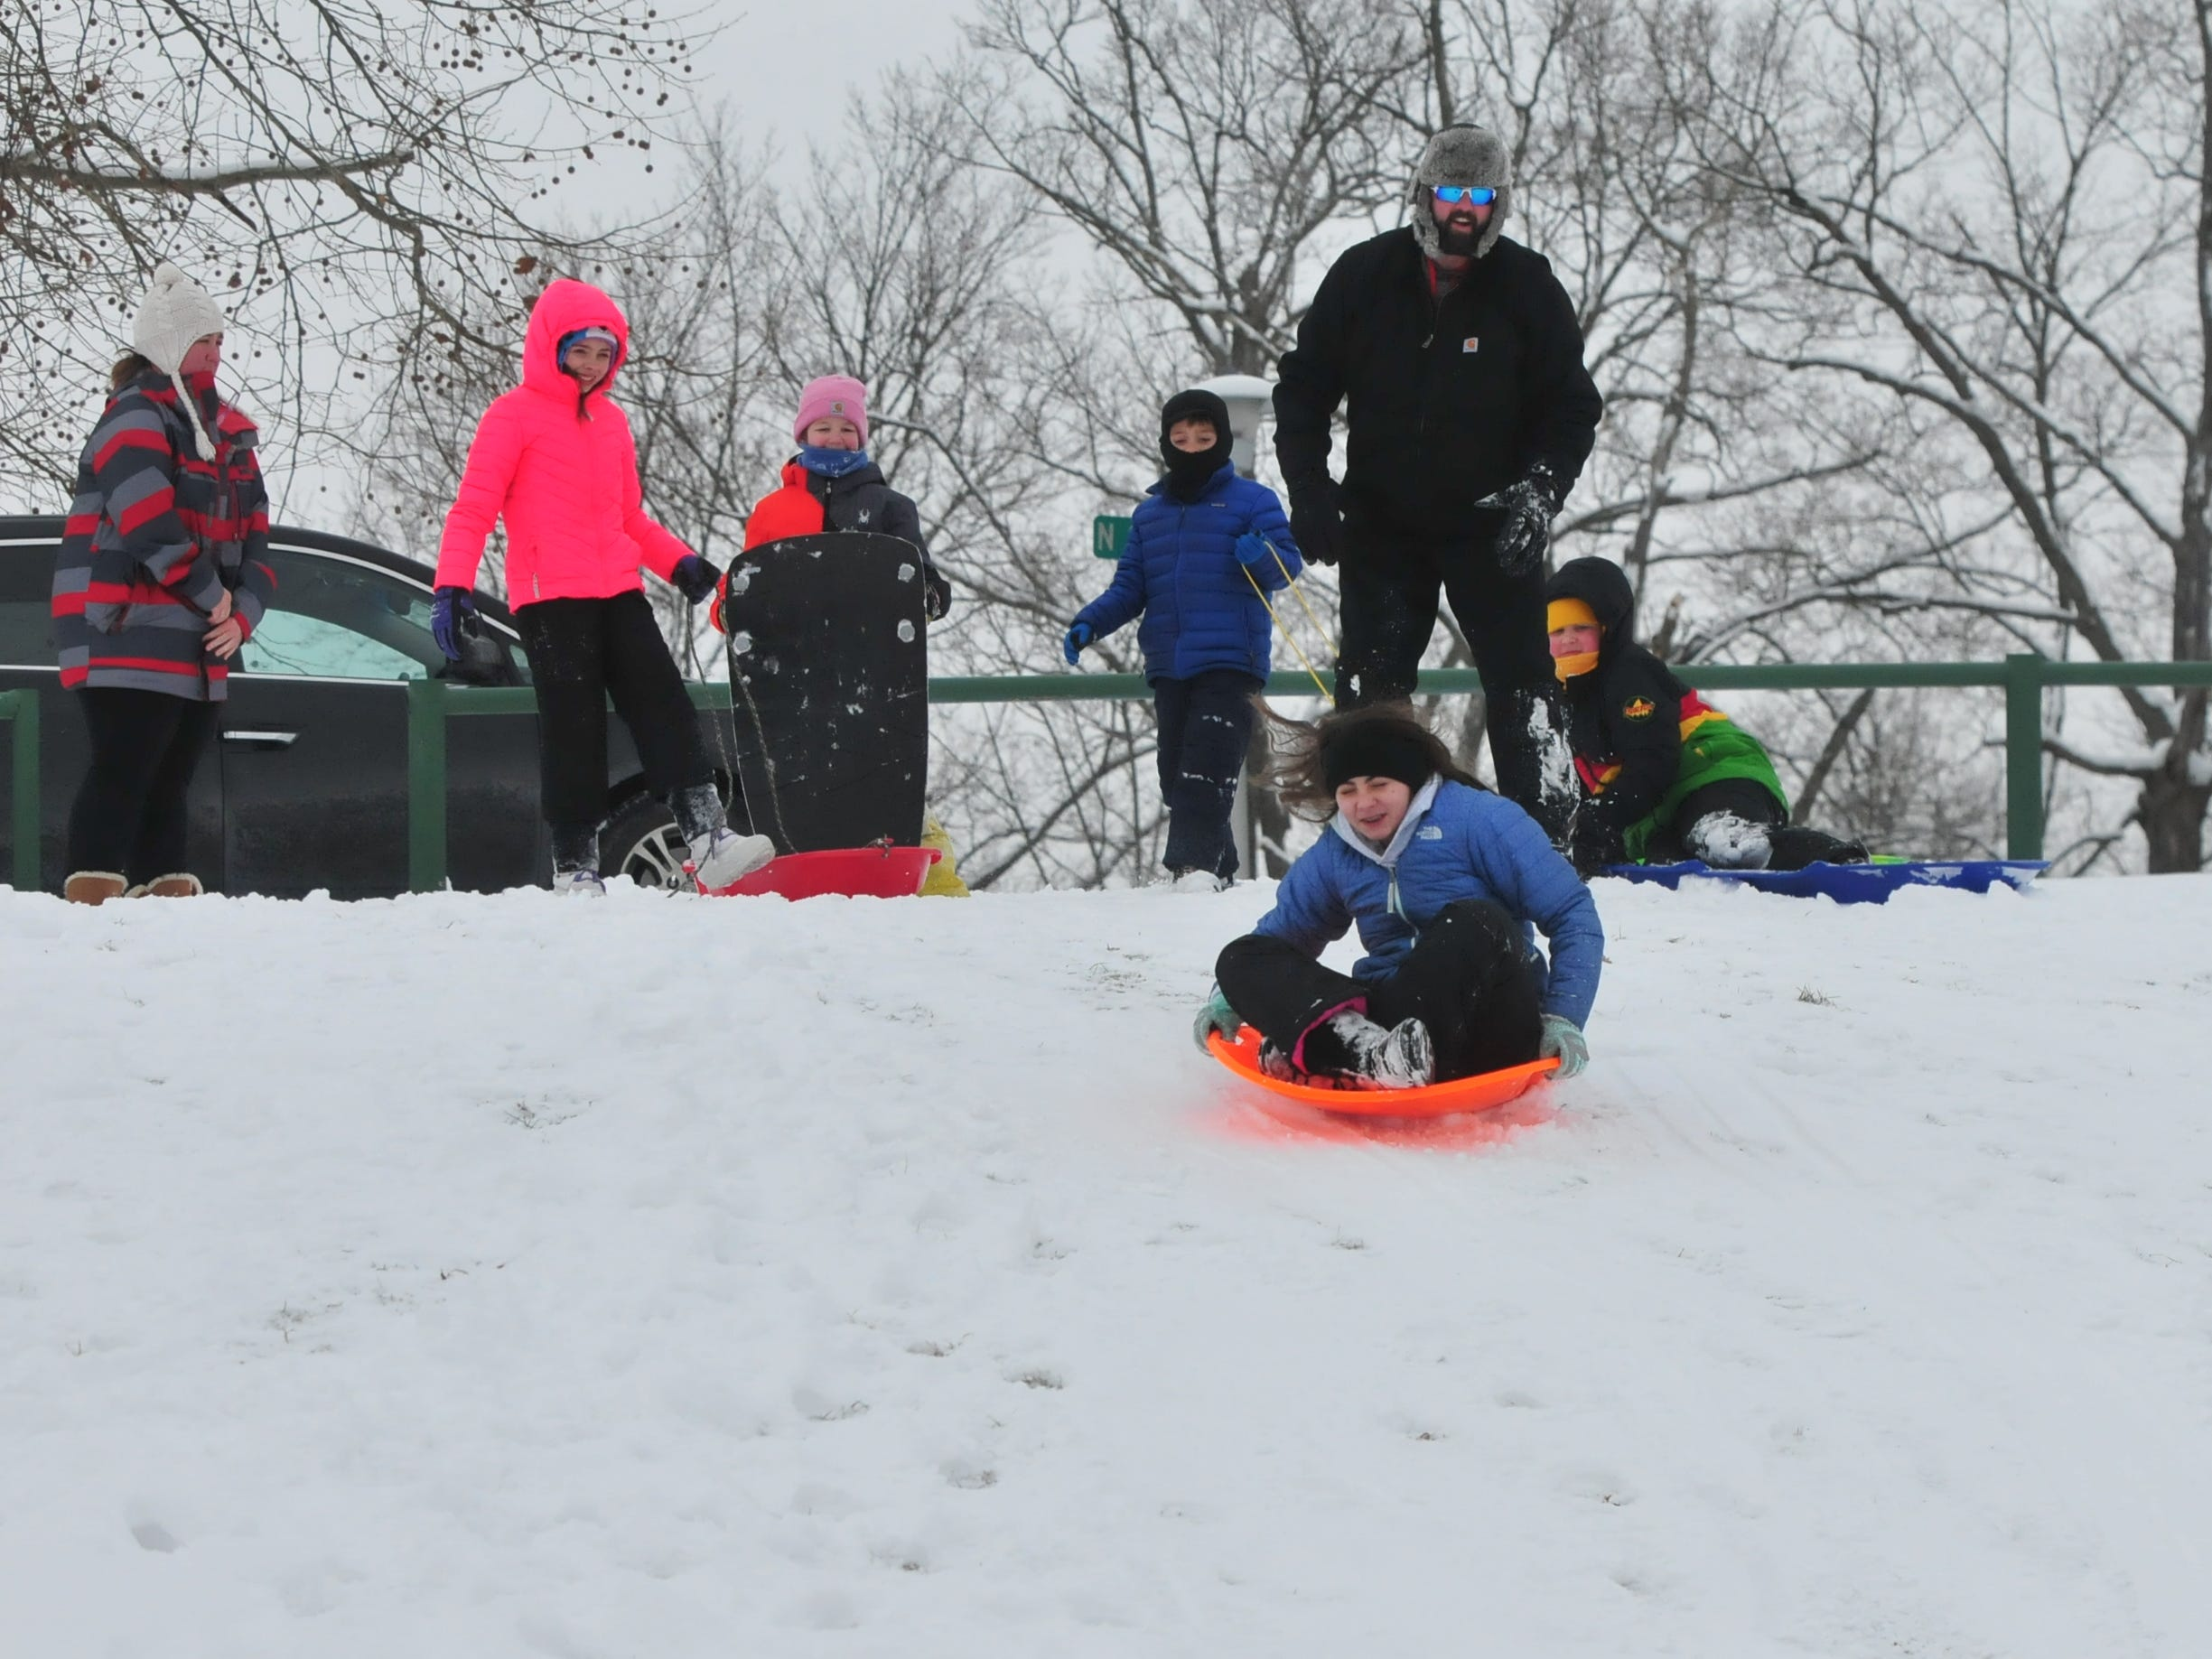 Josh Amyx gives Alyssa Amyx a push as others watch Friday at Roosevelt Hill in Glen Miller Park.